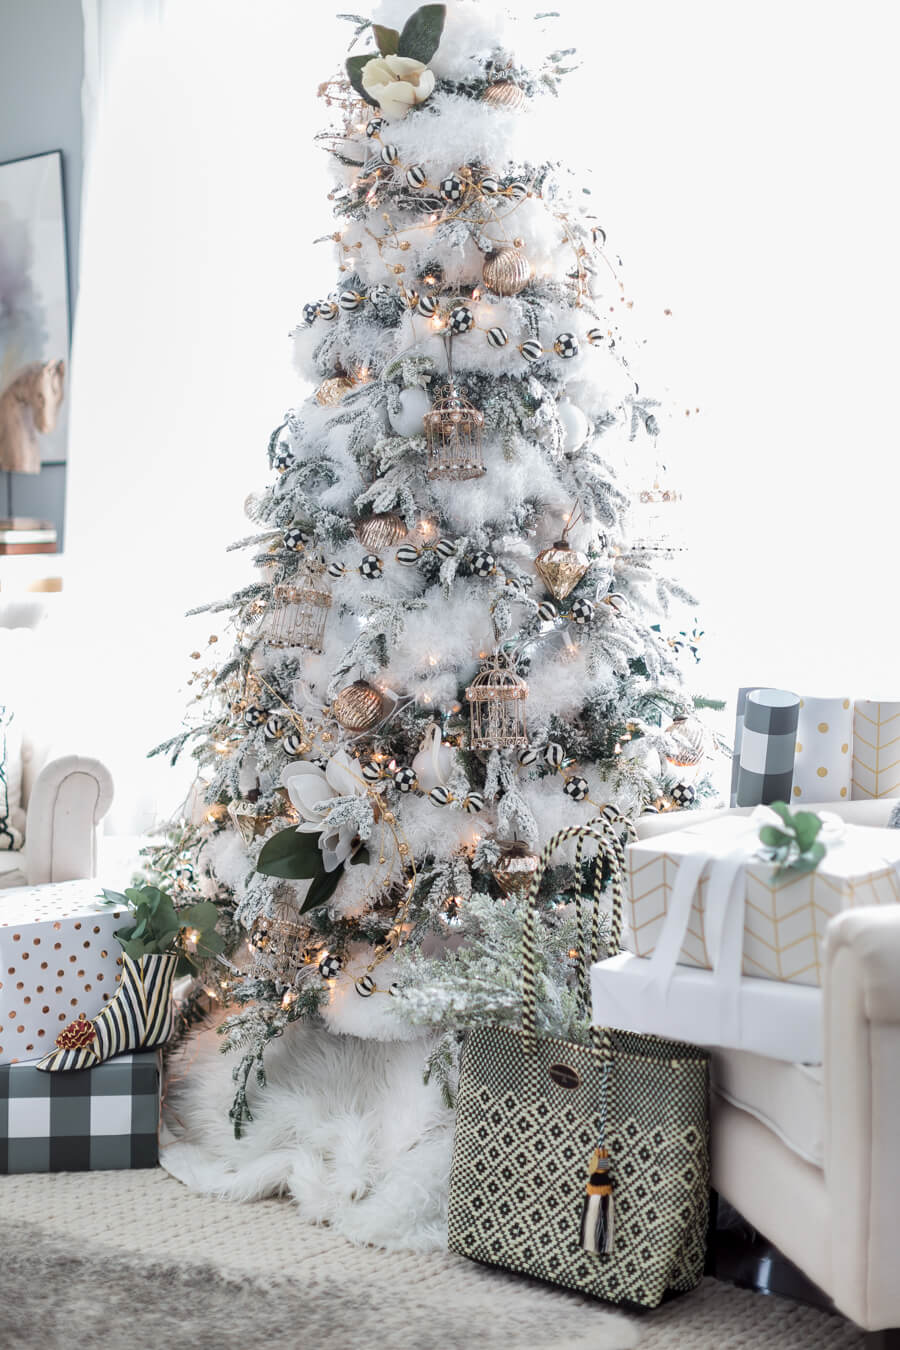 Black and White Christmas Tree | Best Way to Decorate Christmas Trees on a Budget: Inexpensive or Free & Easy Holiday Ornaments & Decorations